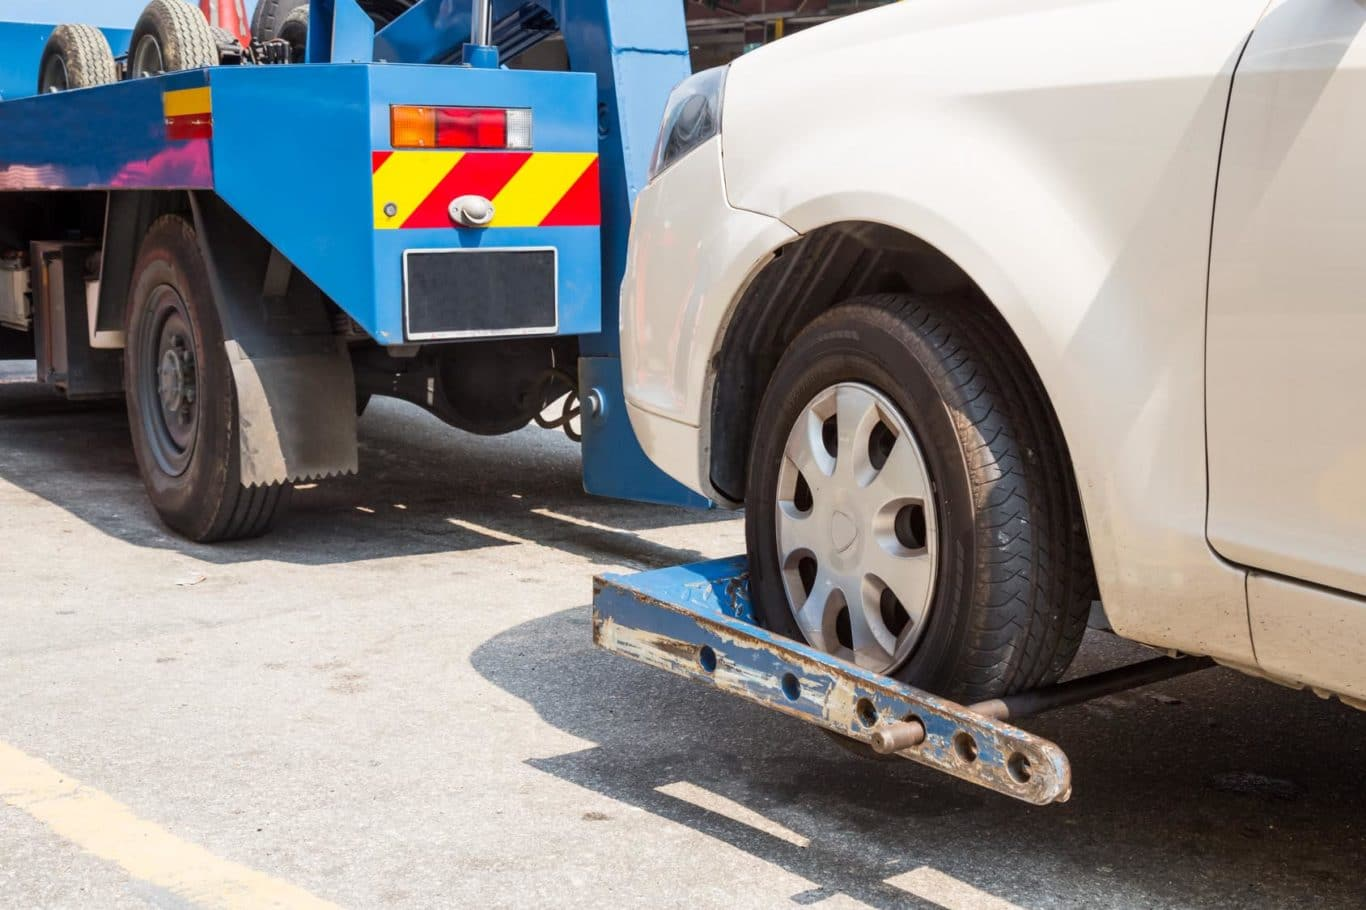 Citywest expert Car Towing services